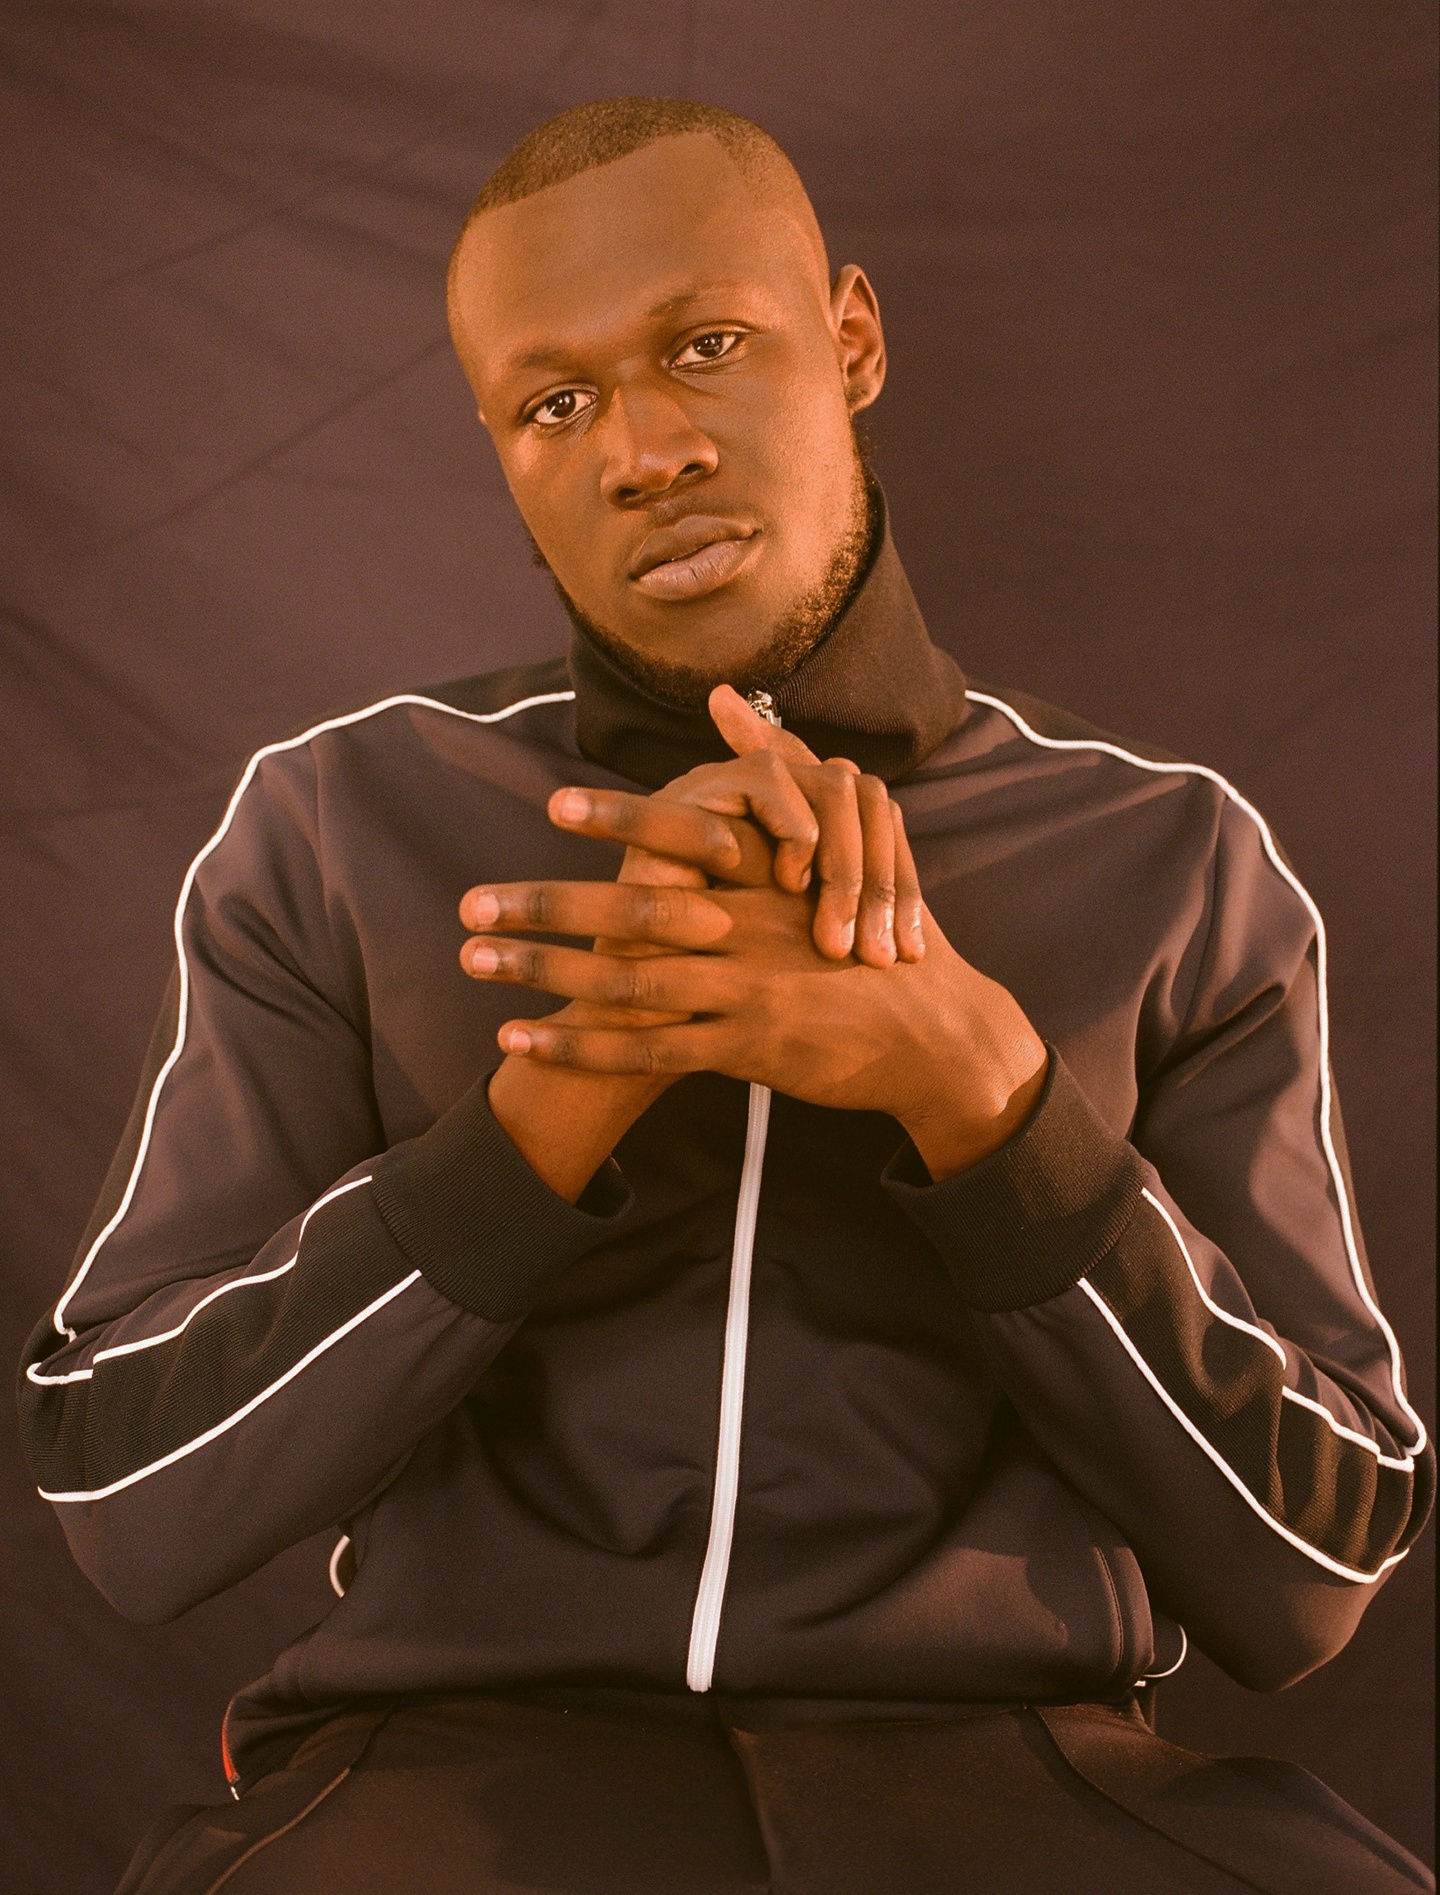 stormzy-cover-story-interview-gang-signs-prayer